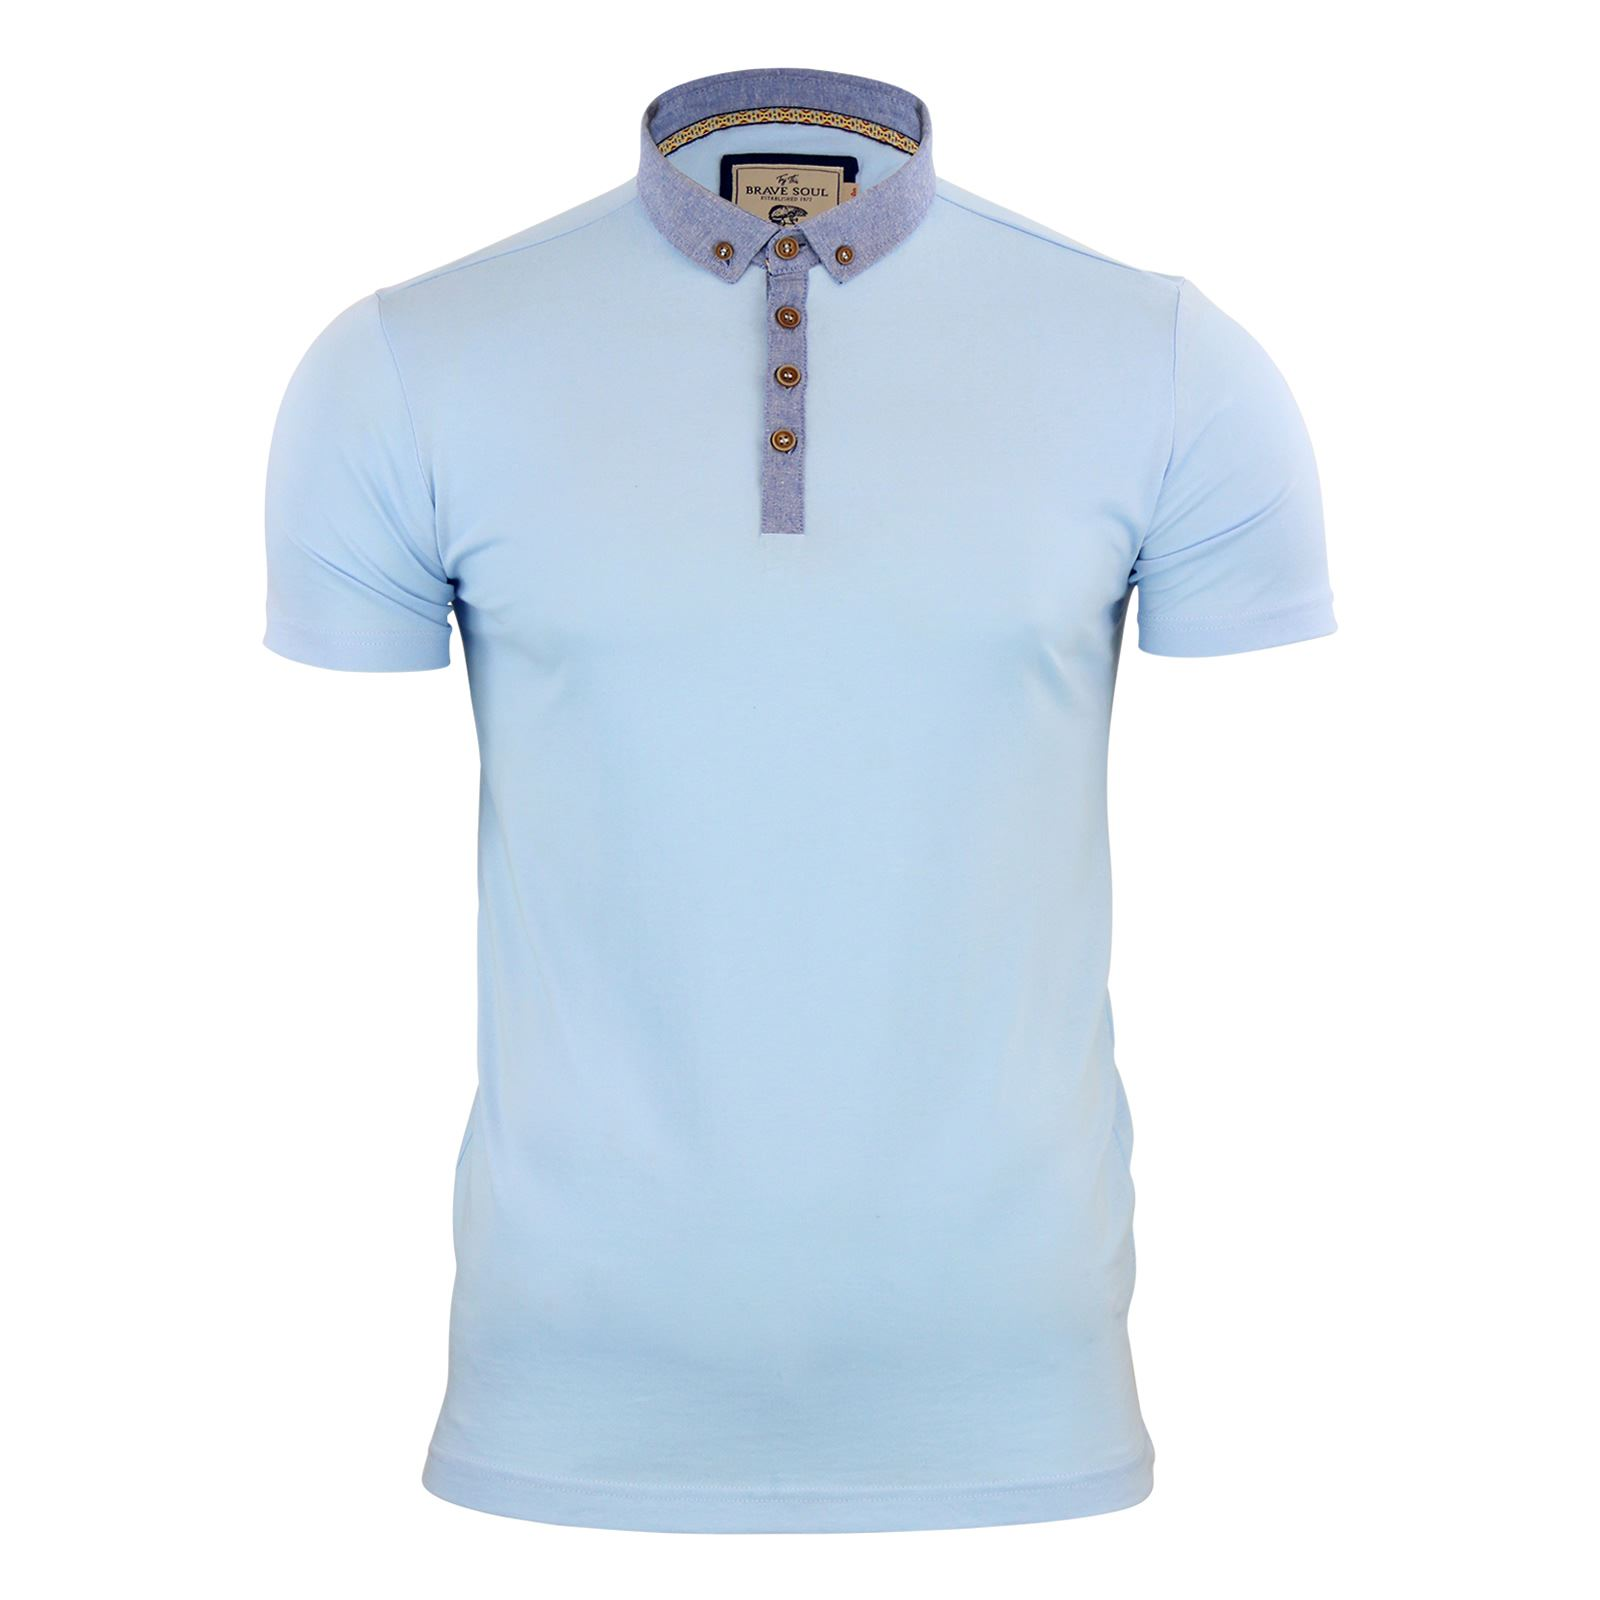 Mens-Polo-T-Shirt-Brave-Soul-Glover-Cotton-Collared-Short-Sleeve-Casual-Top thumbnail 39